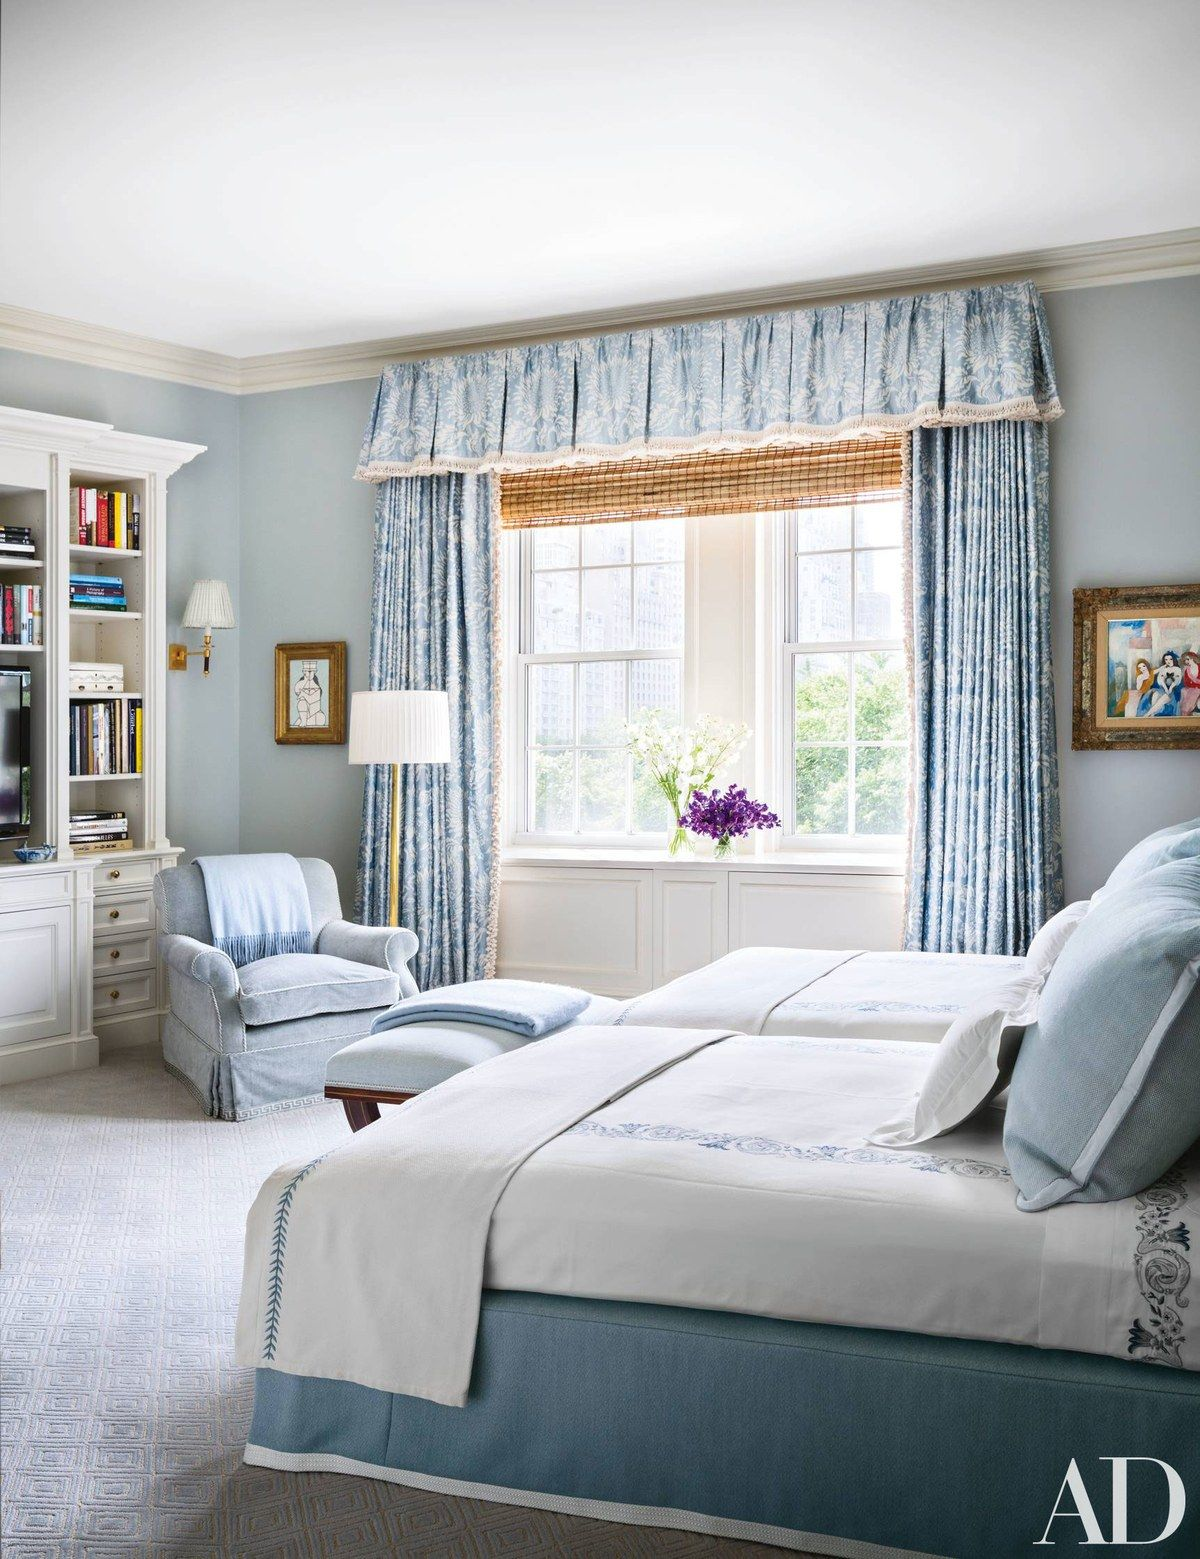 Twin Bed Hotel Room: How To Decorate With Two Twin Beds